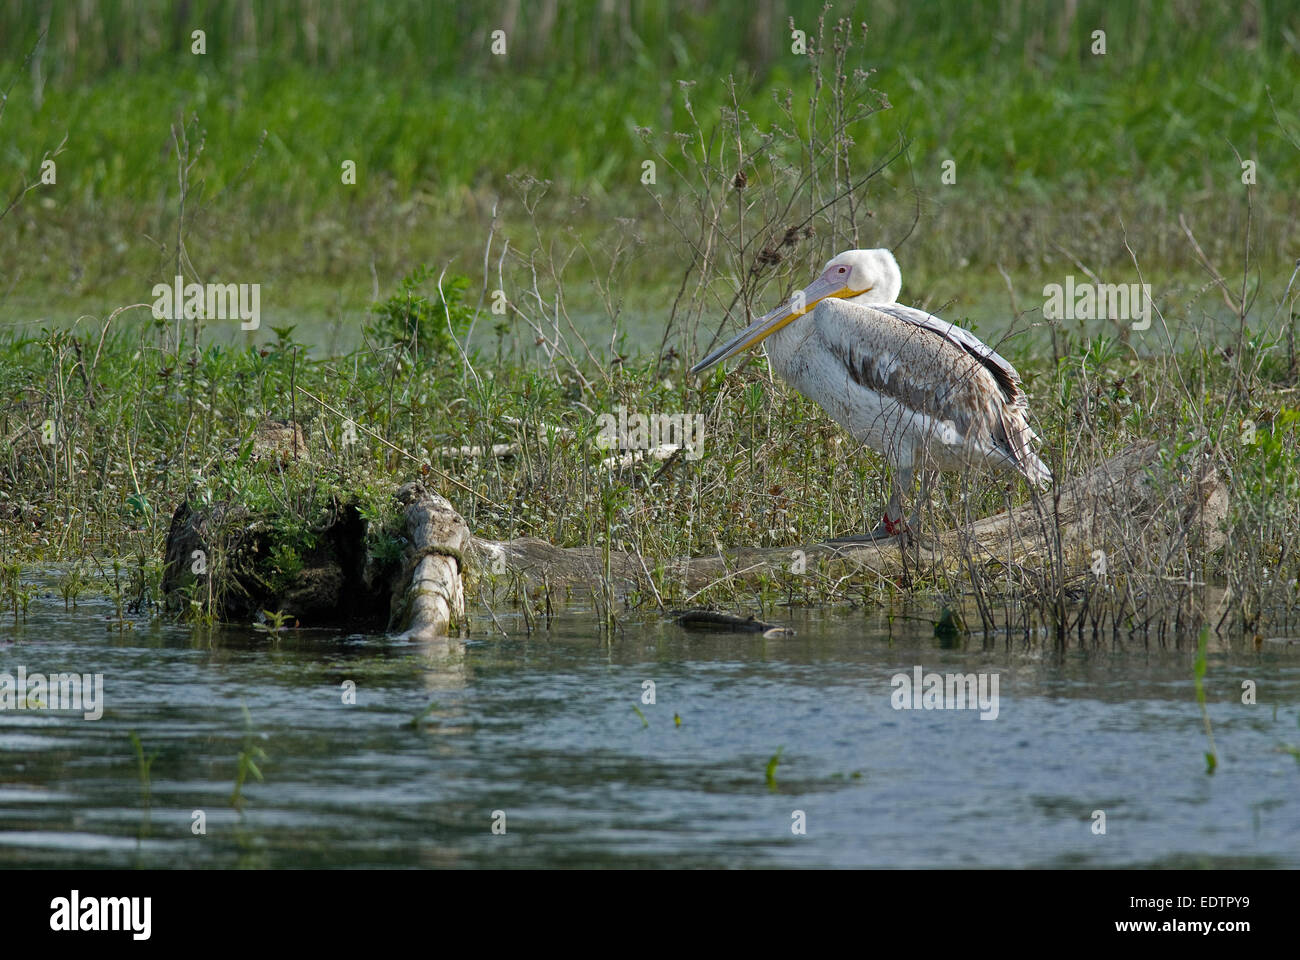 Young of great white pelican (Pelecanus onocrotalus), Danube delta, Romania, Europa - Stock Image